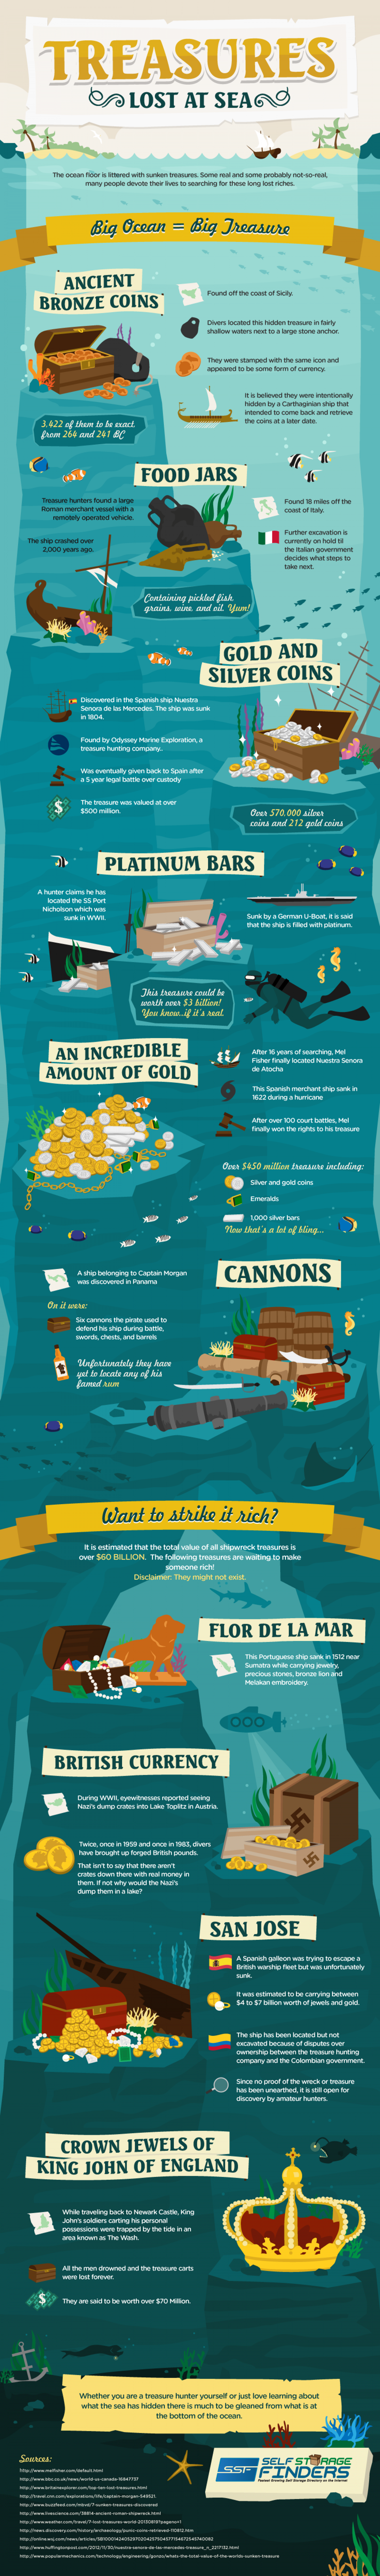 Treasures Lost at Sea Infographic